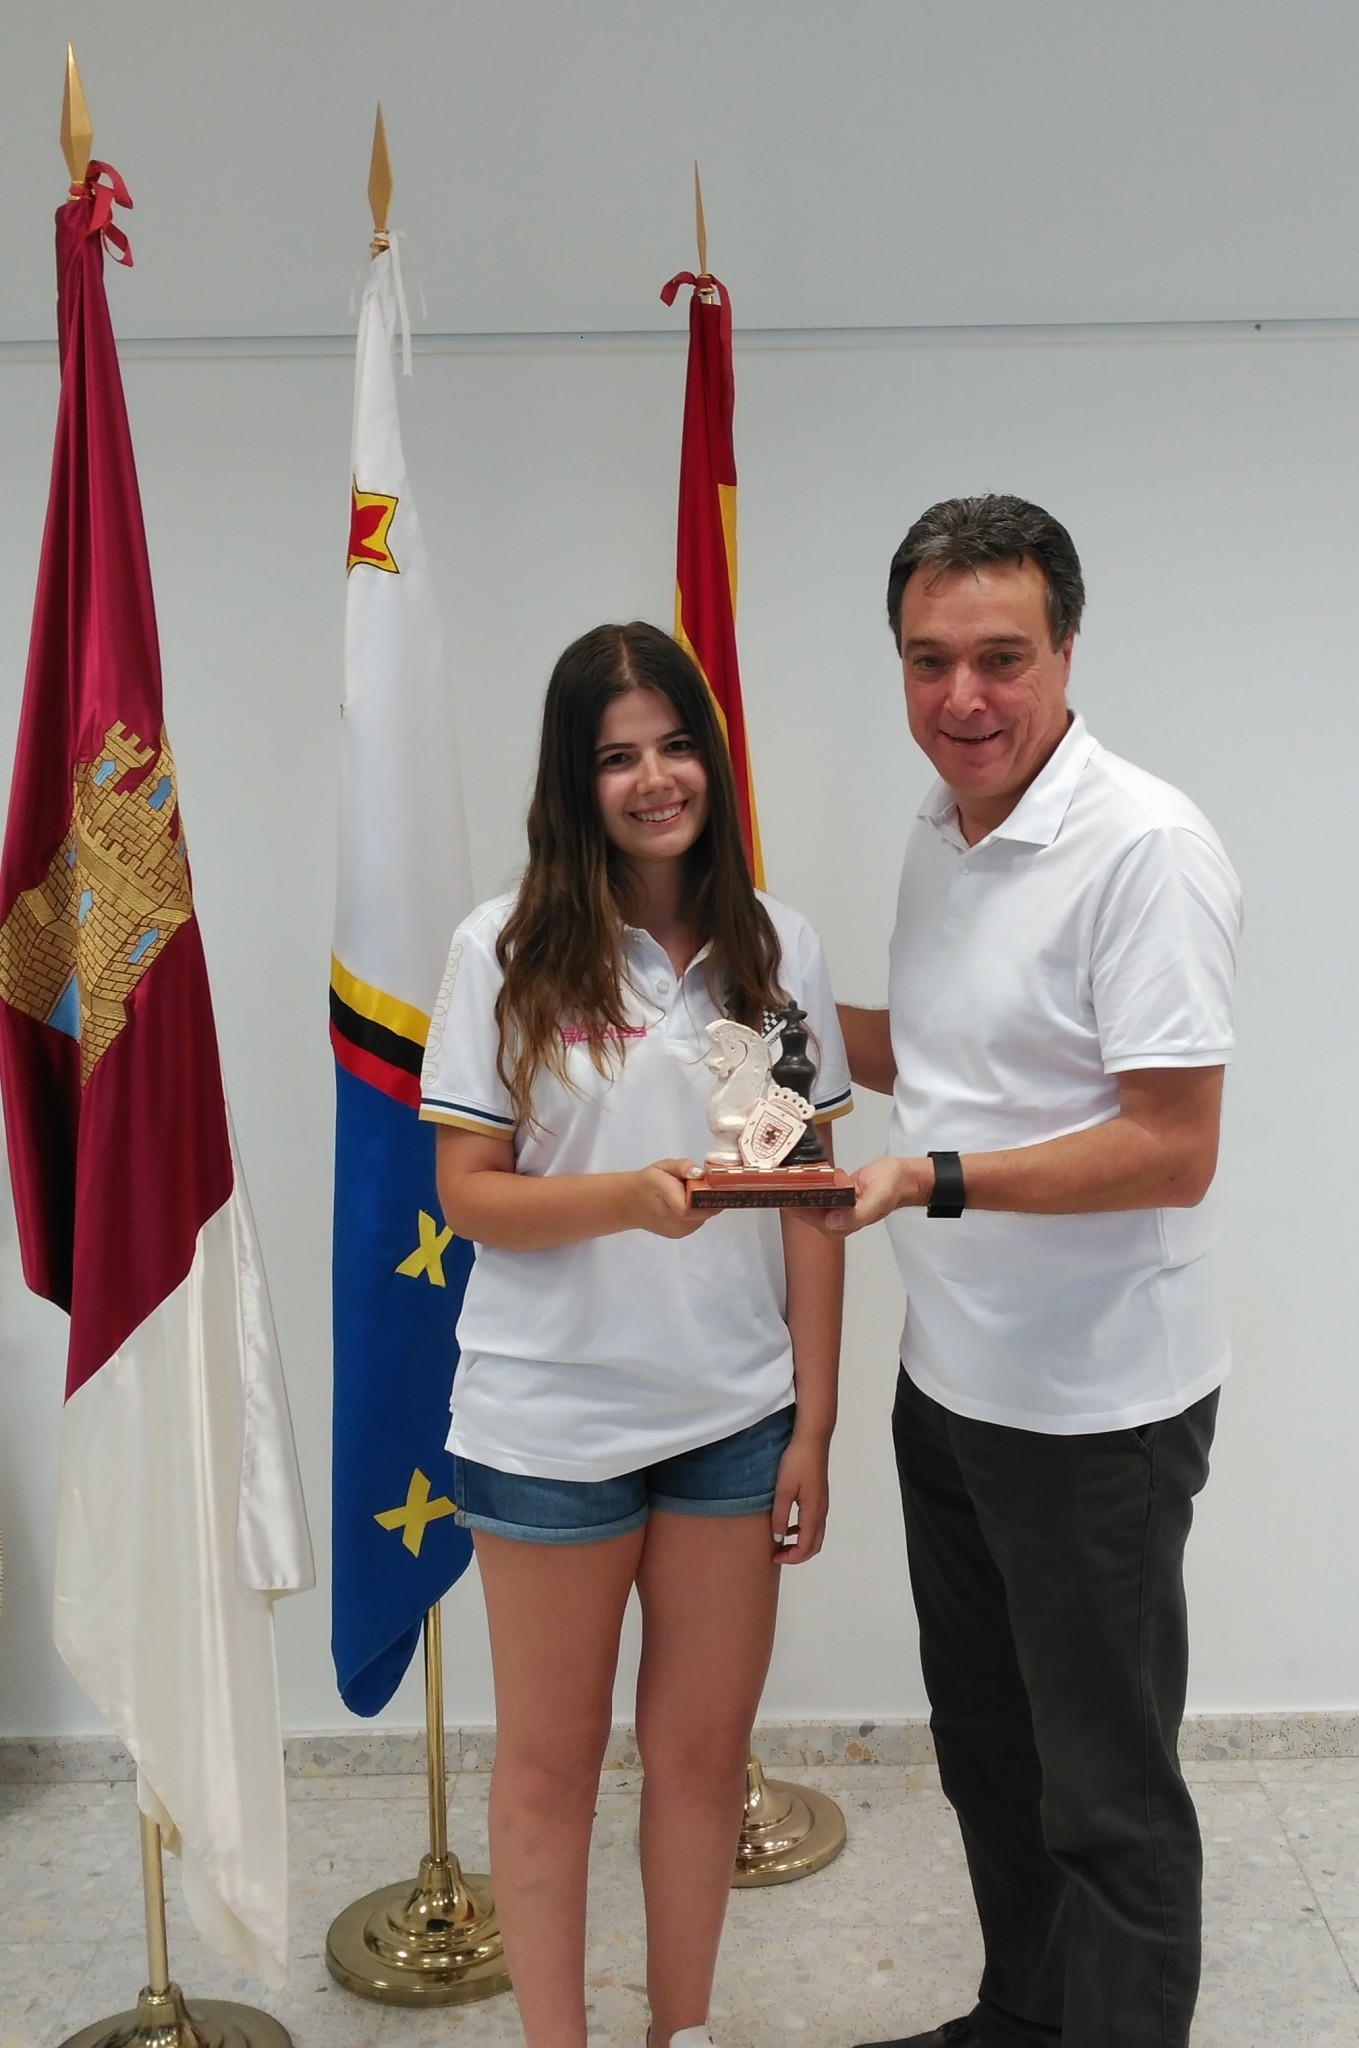 1 Laura Alonso, Campeona